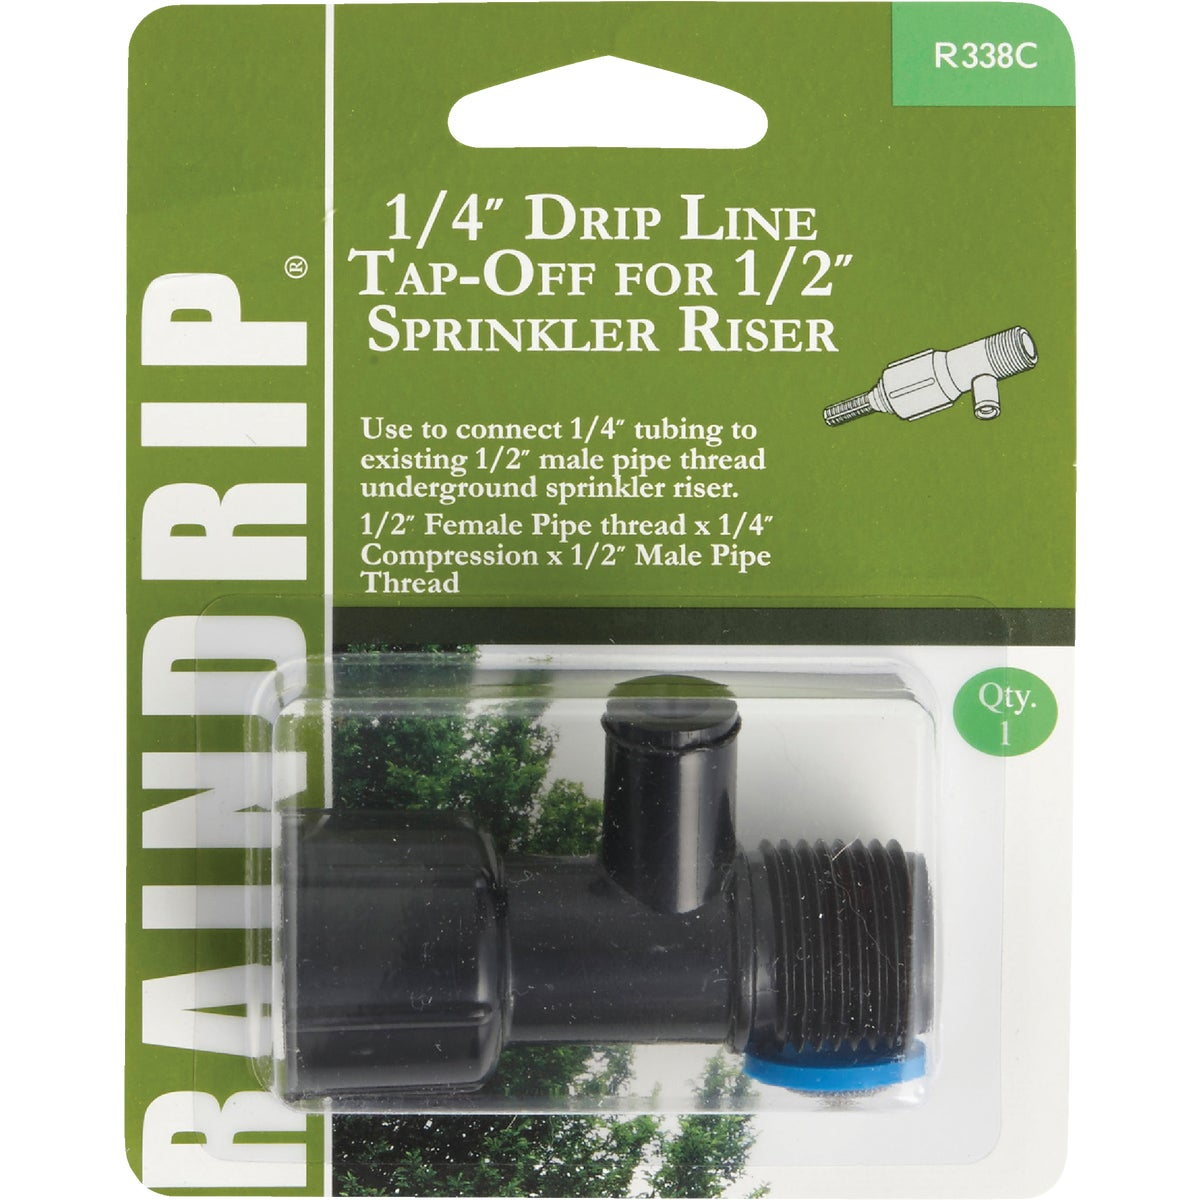 "1/4"" DRIP LINE TAP OFF - R338CT by Raindrip Inc"